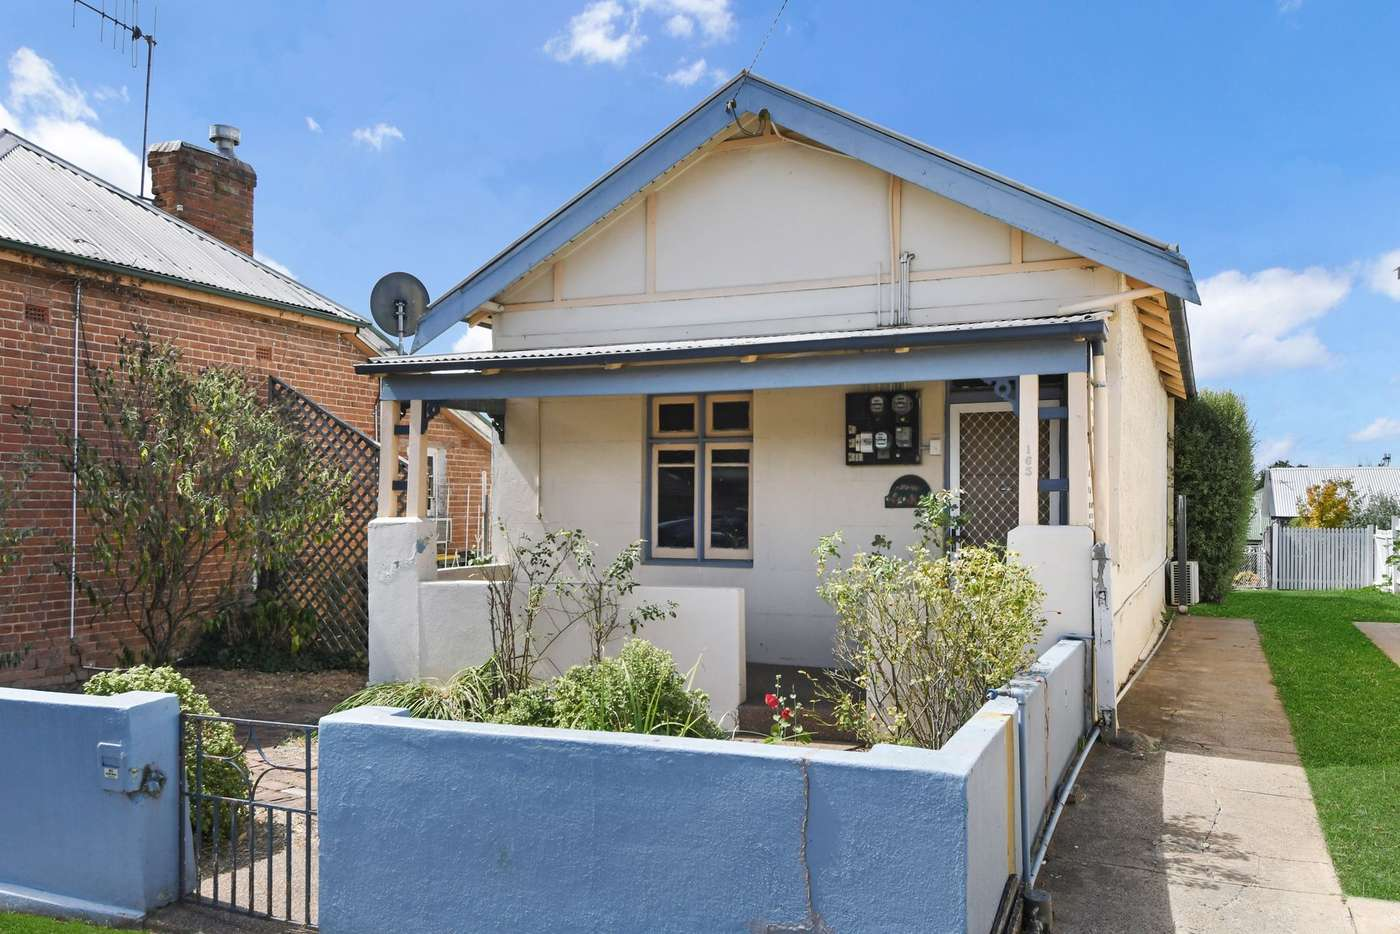 Main view of Homely house listing, 165 Durham Street, Bathurst NSW 2795